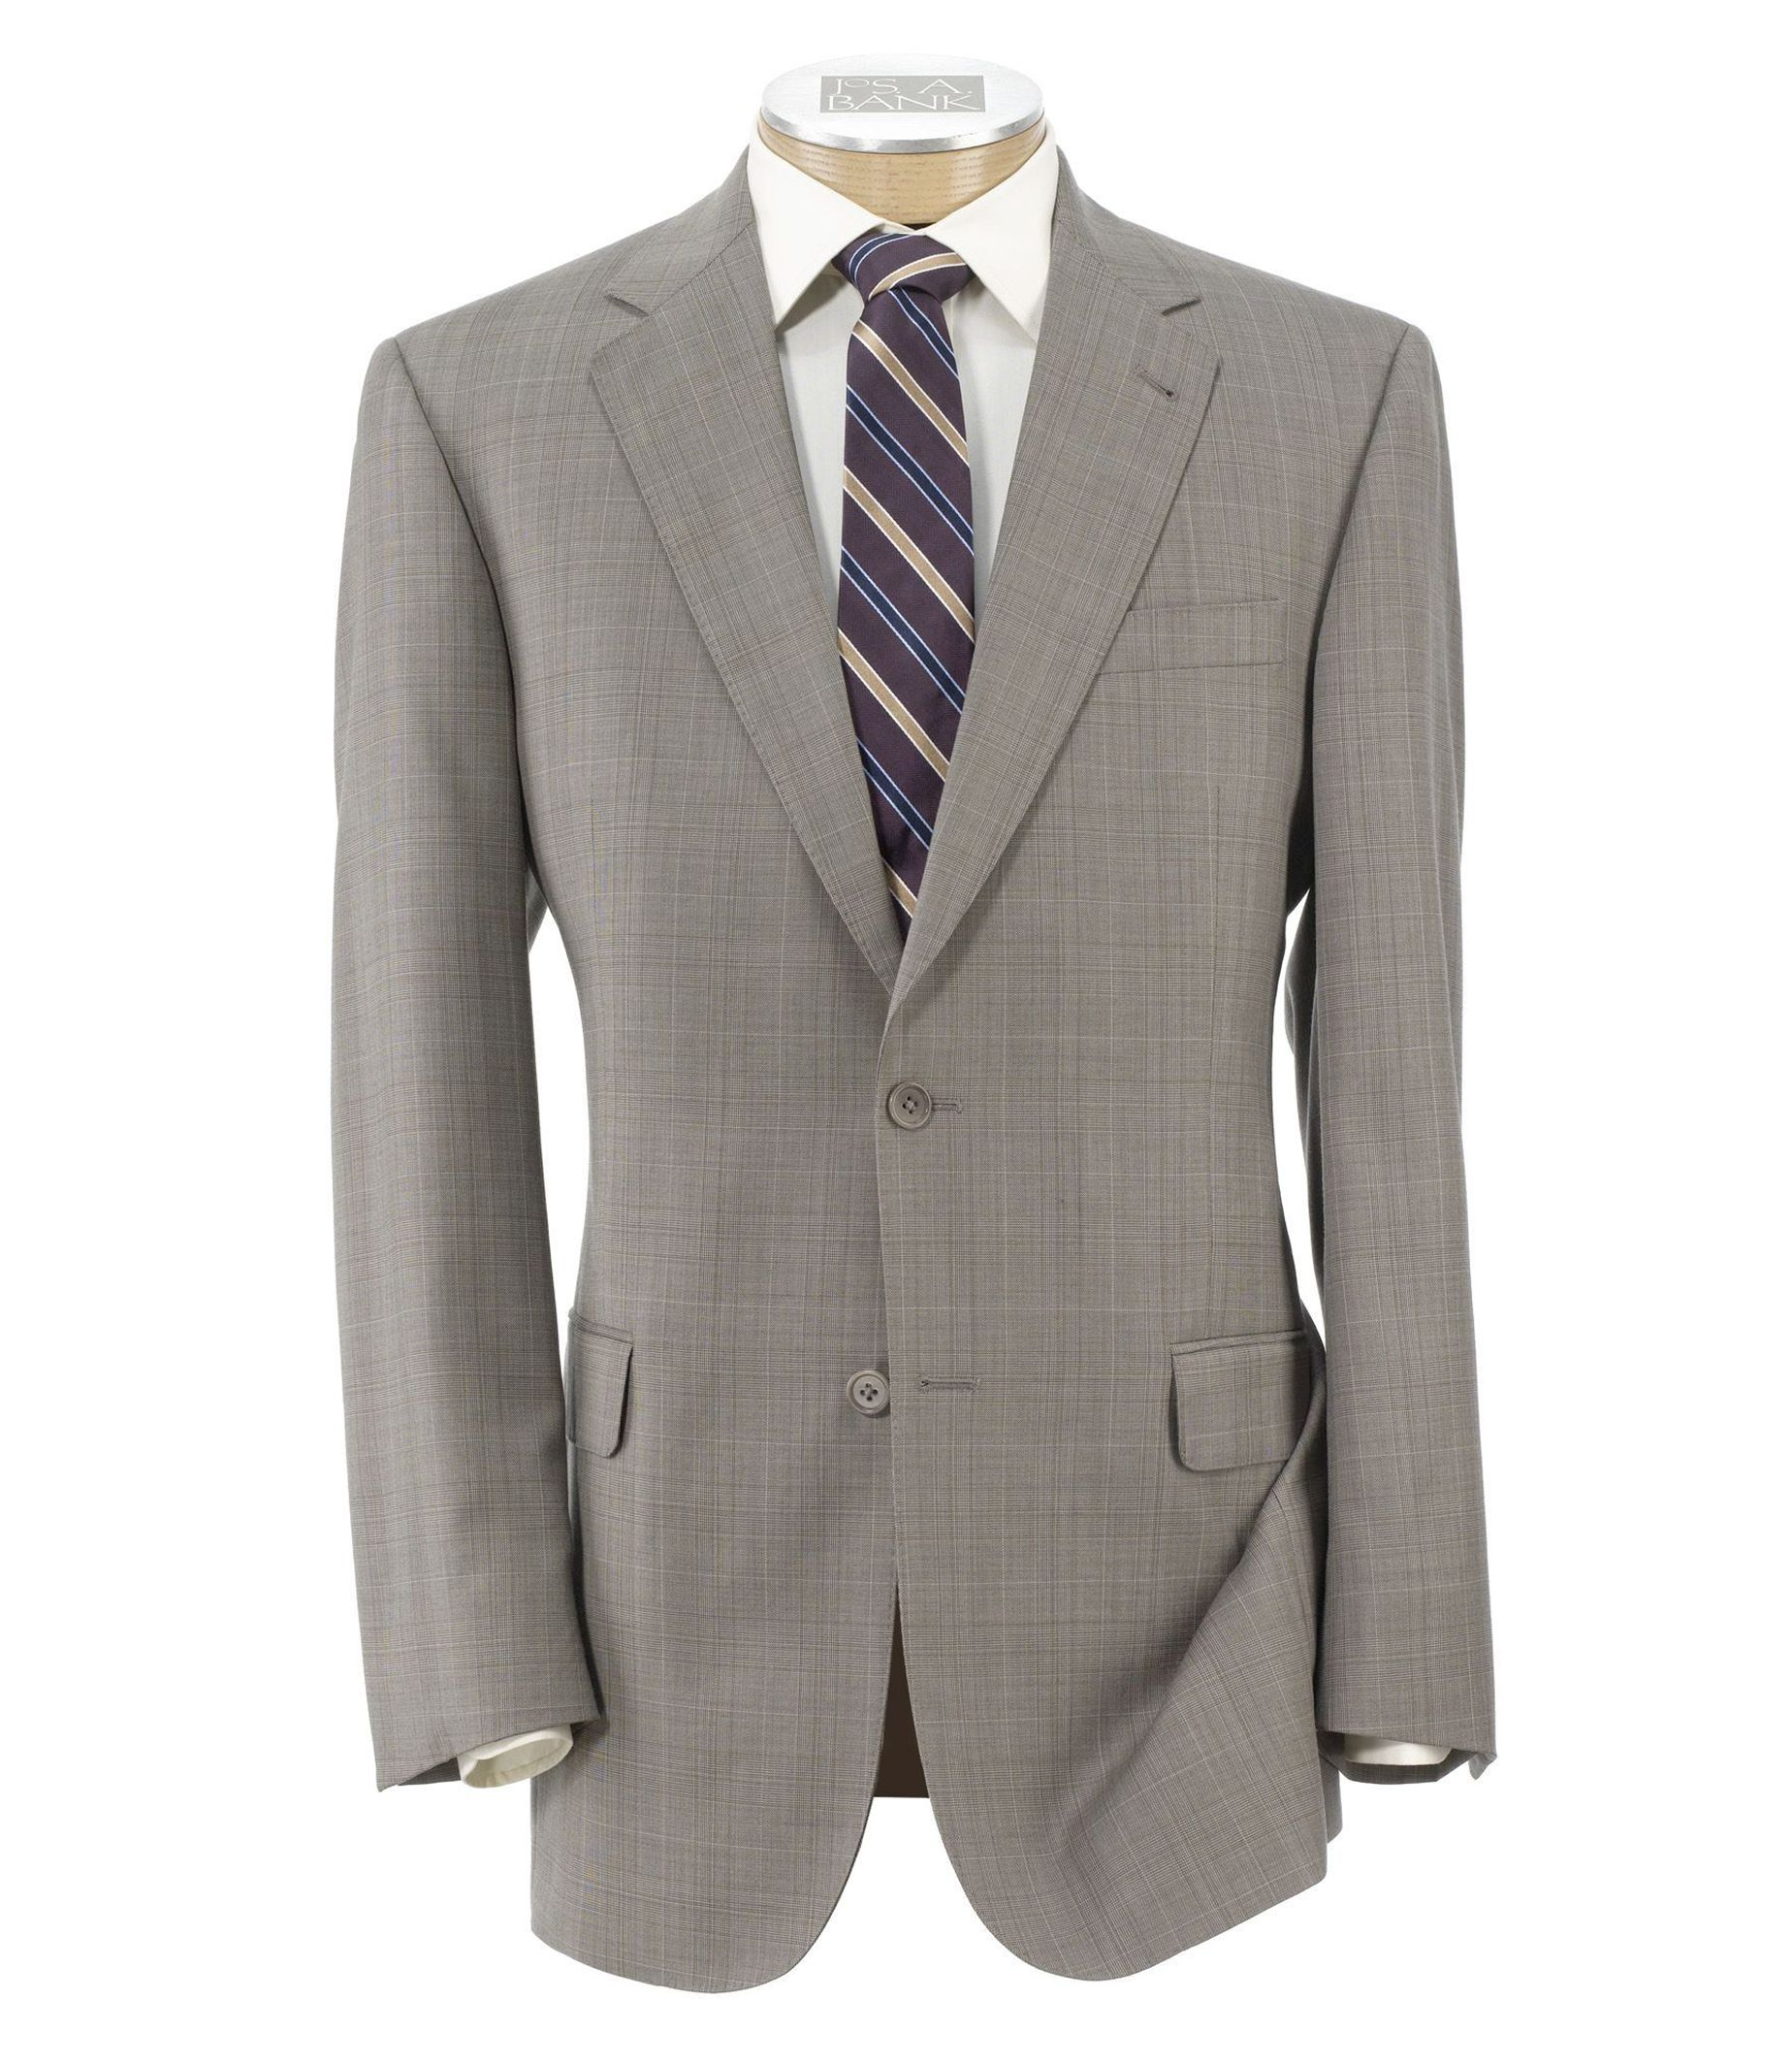 Signature Gold 2-Button Wool Suit- Tan Plaid